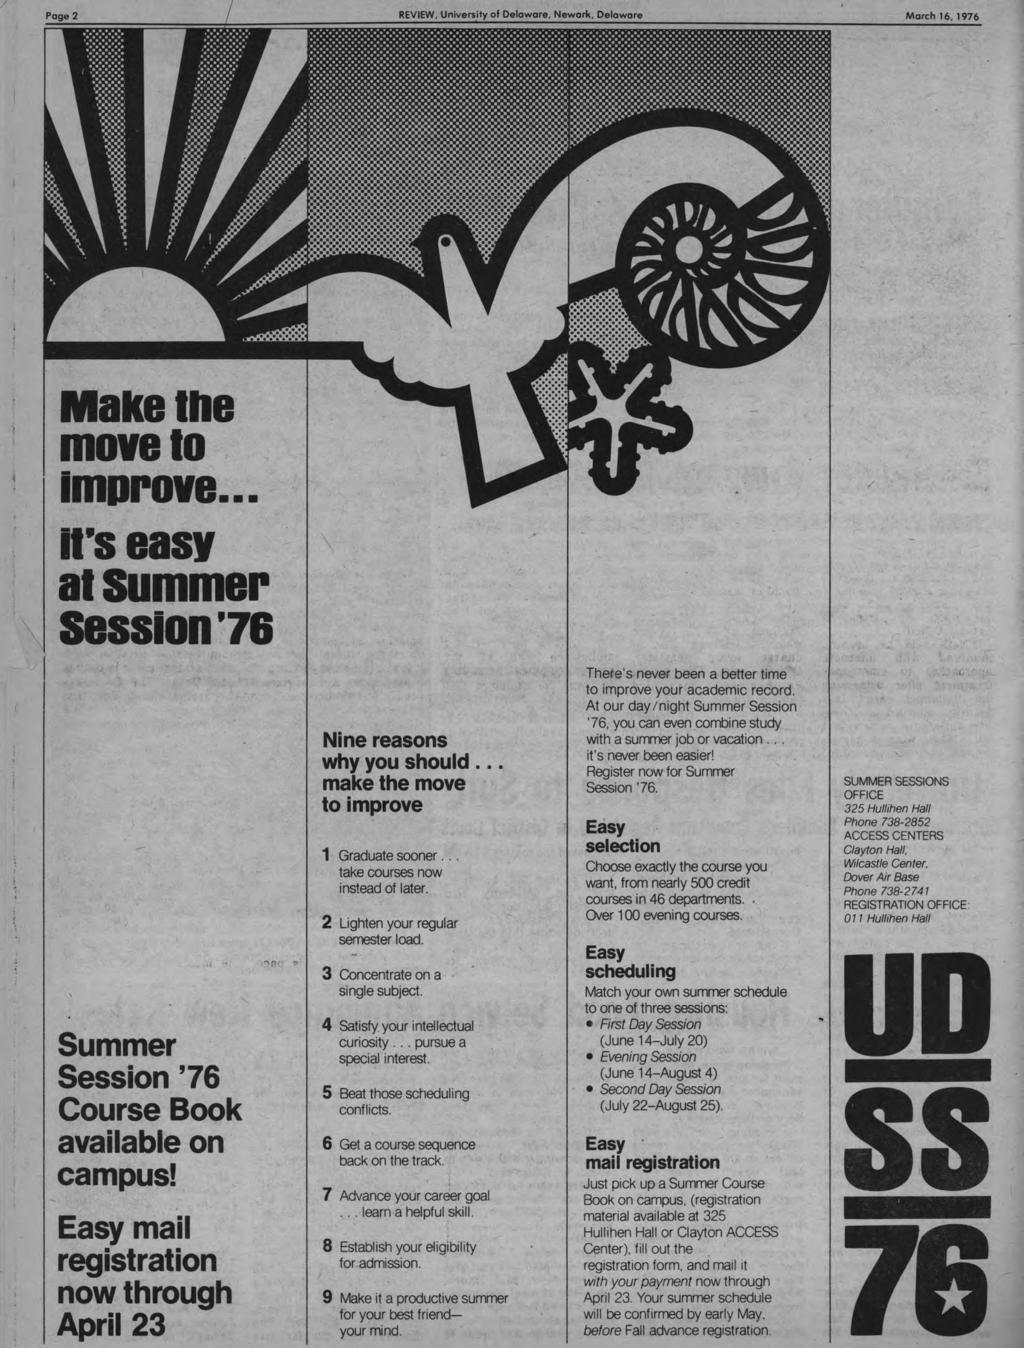 REVEW, Univers of Delaware, Newark, Delaware March 16, 1976 Make the move to improve... it's easy at summer session~78 / Summer Session '76 Course Book available on campus!